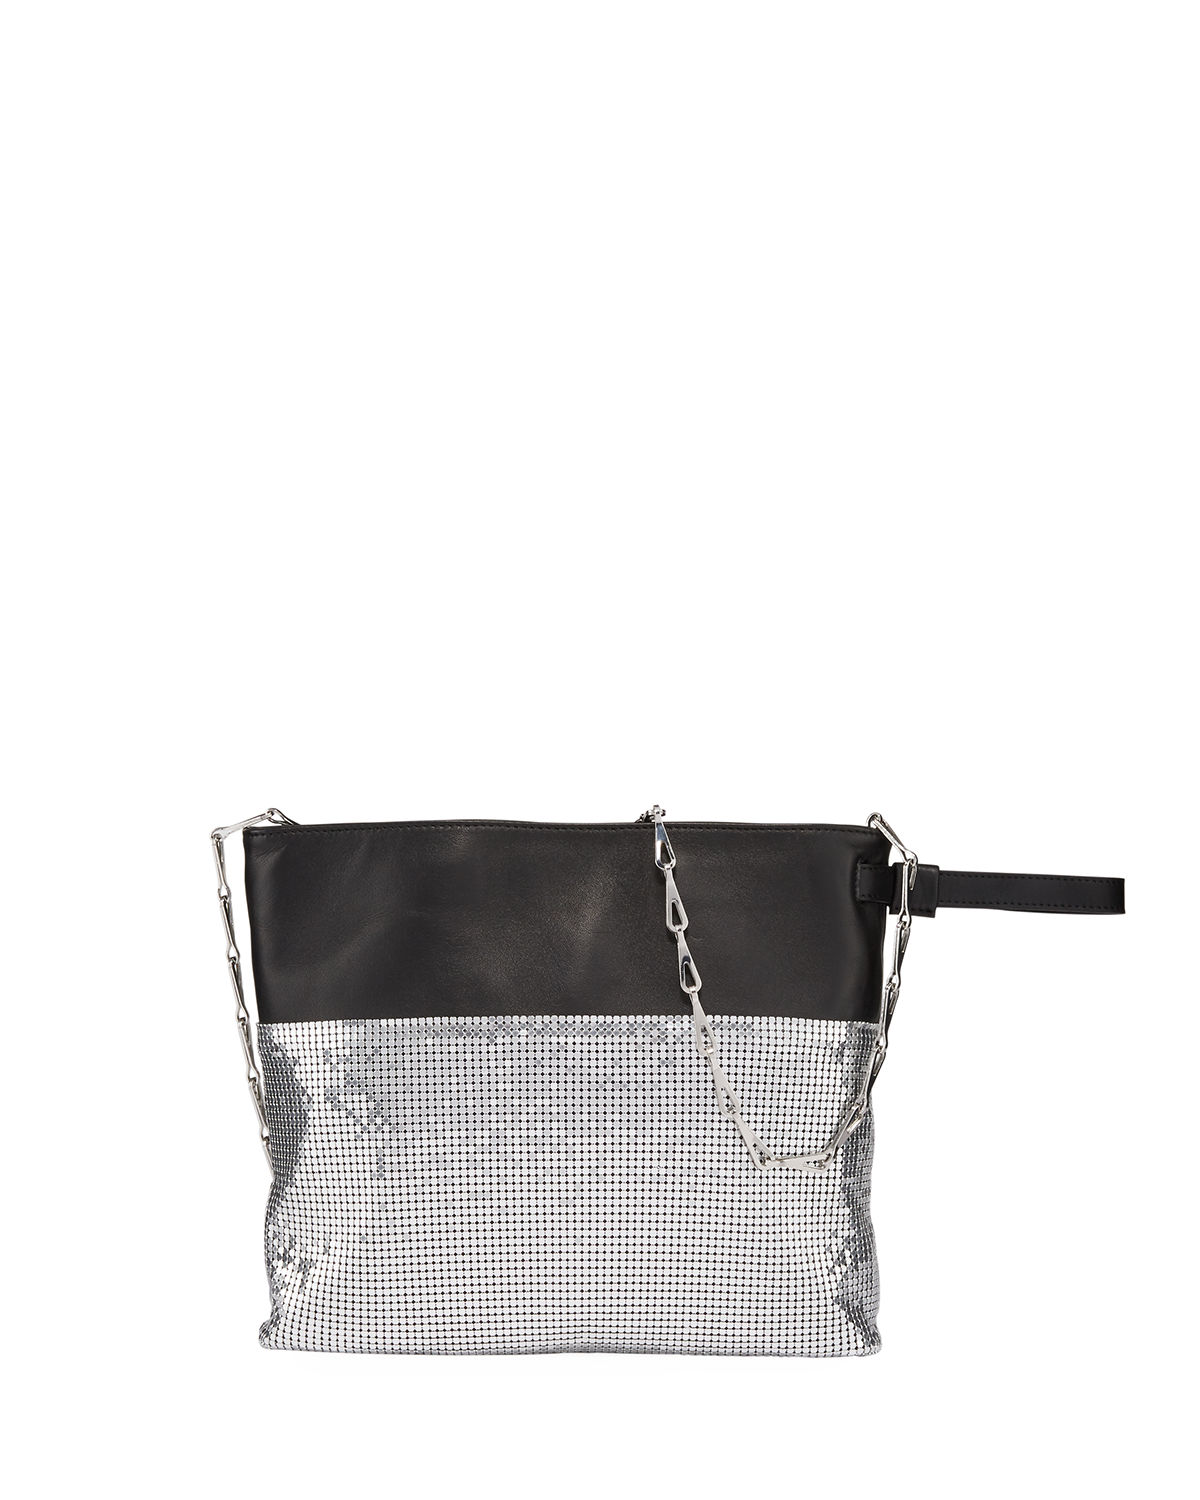 Paco Rabanne Accessories SECTION CHAIN-MAIL POUCH CLUTCH BAG